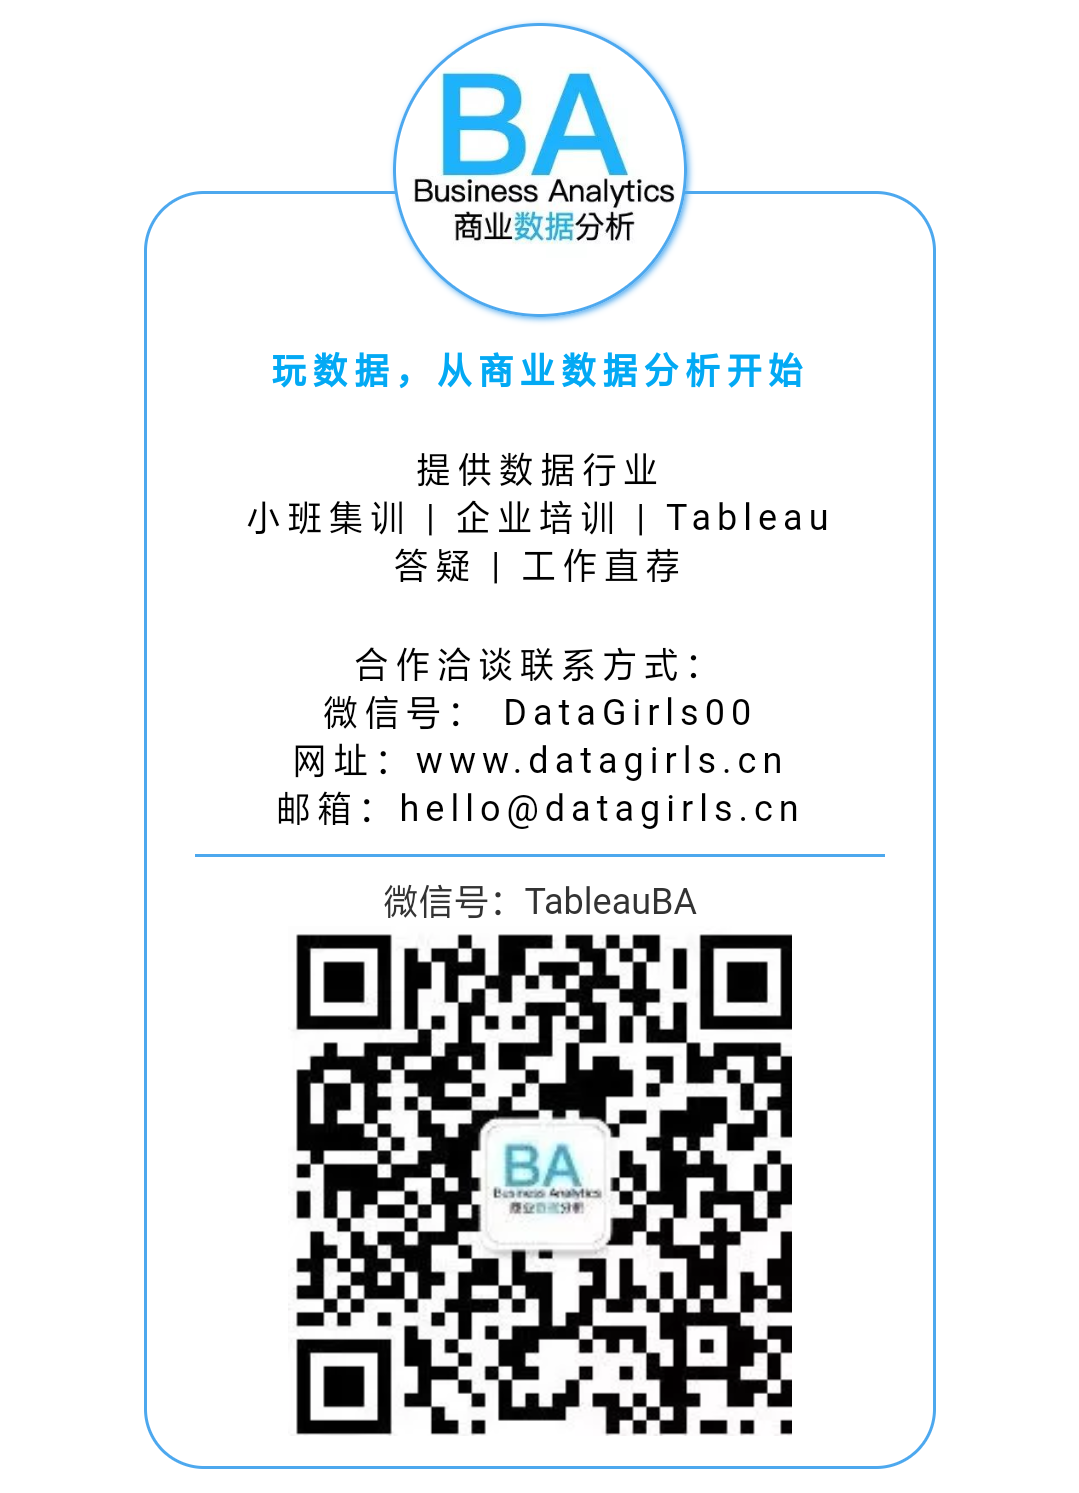 http://www.huodongxing.com/file/20170905/1692804578949/363294887356806.png